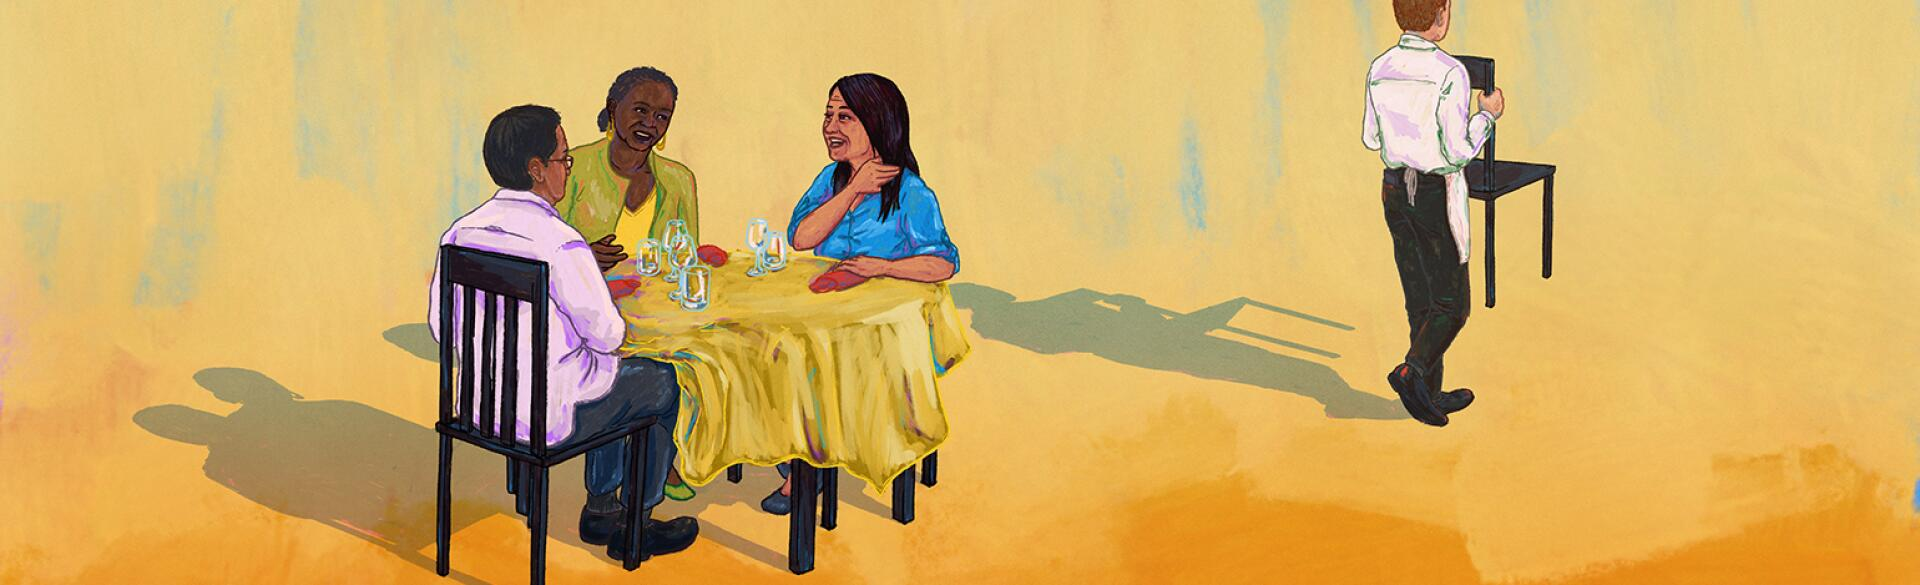 illustration of women sitting at a dinner table and waiter walking away with an empty chair